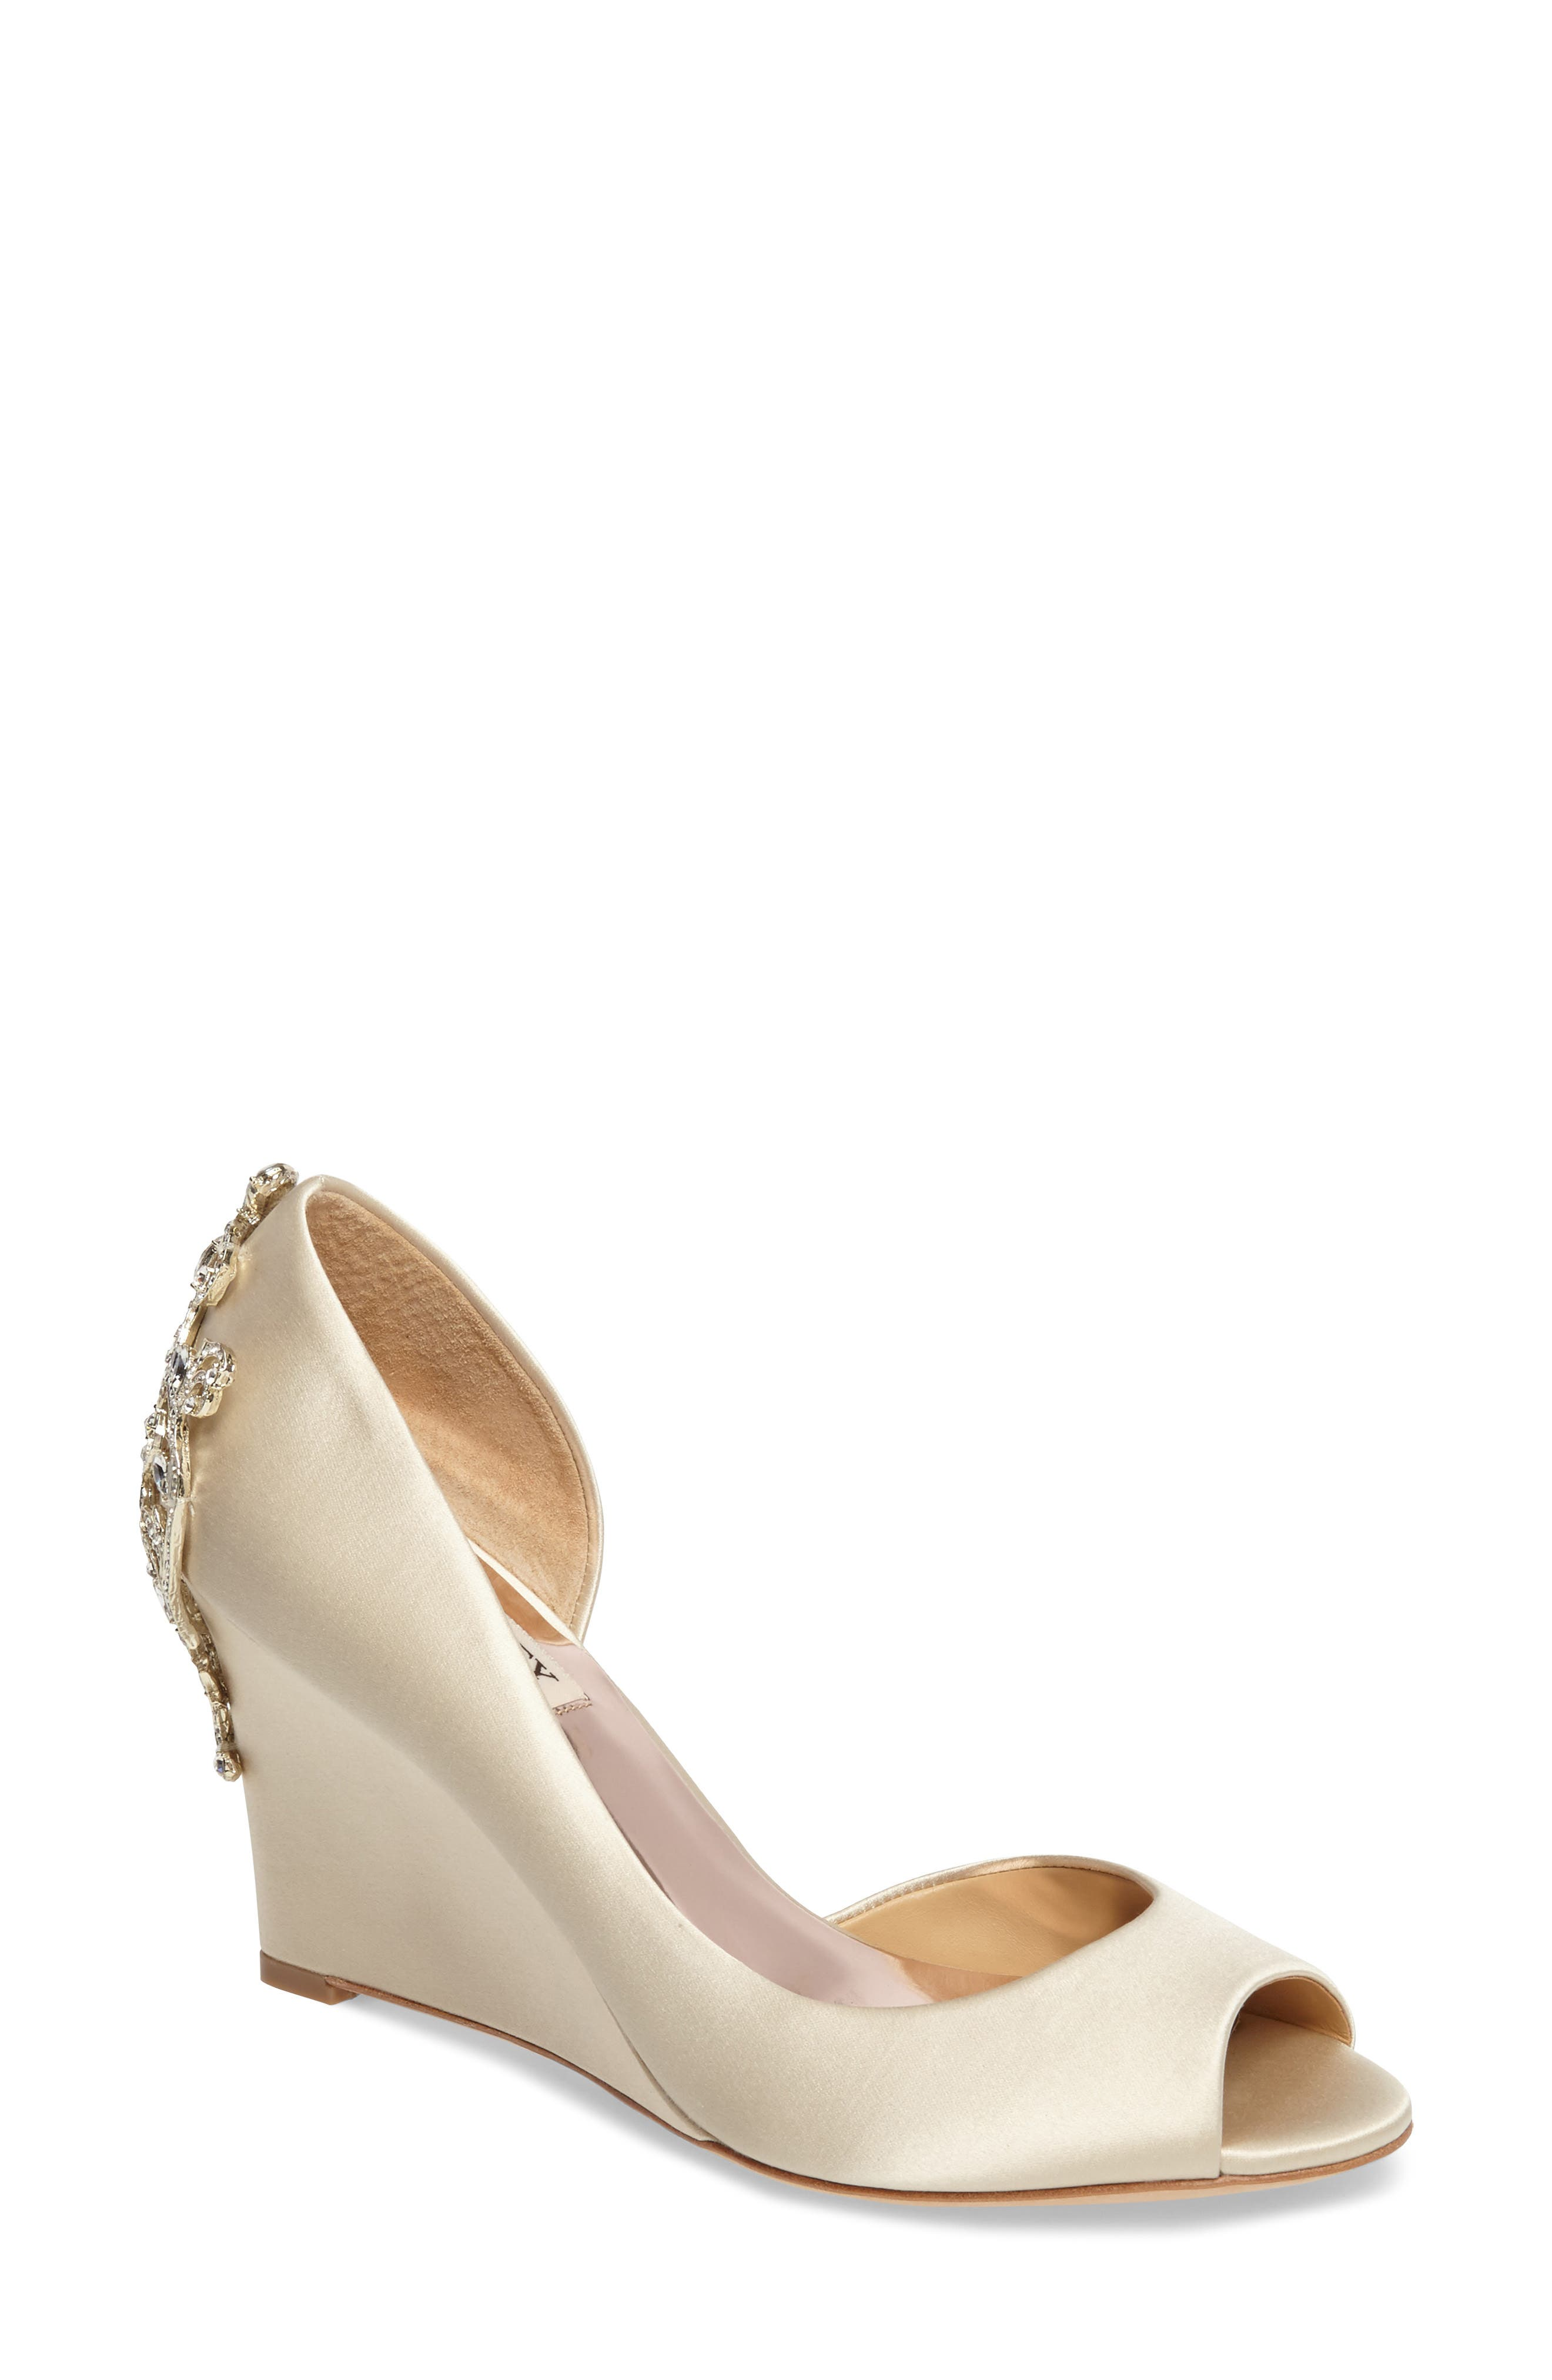 Meagan Embellished Peep Toe Wedge,                         Main,                         color, IVORY SATIN